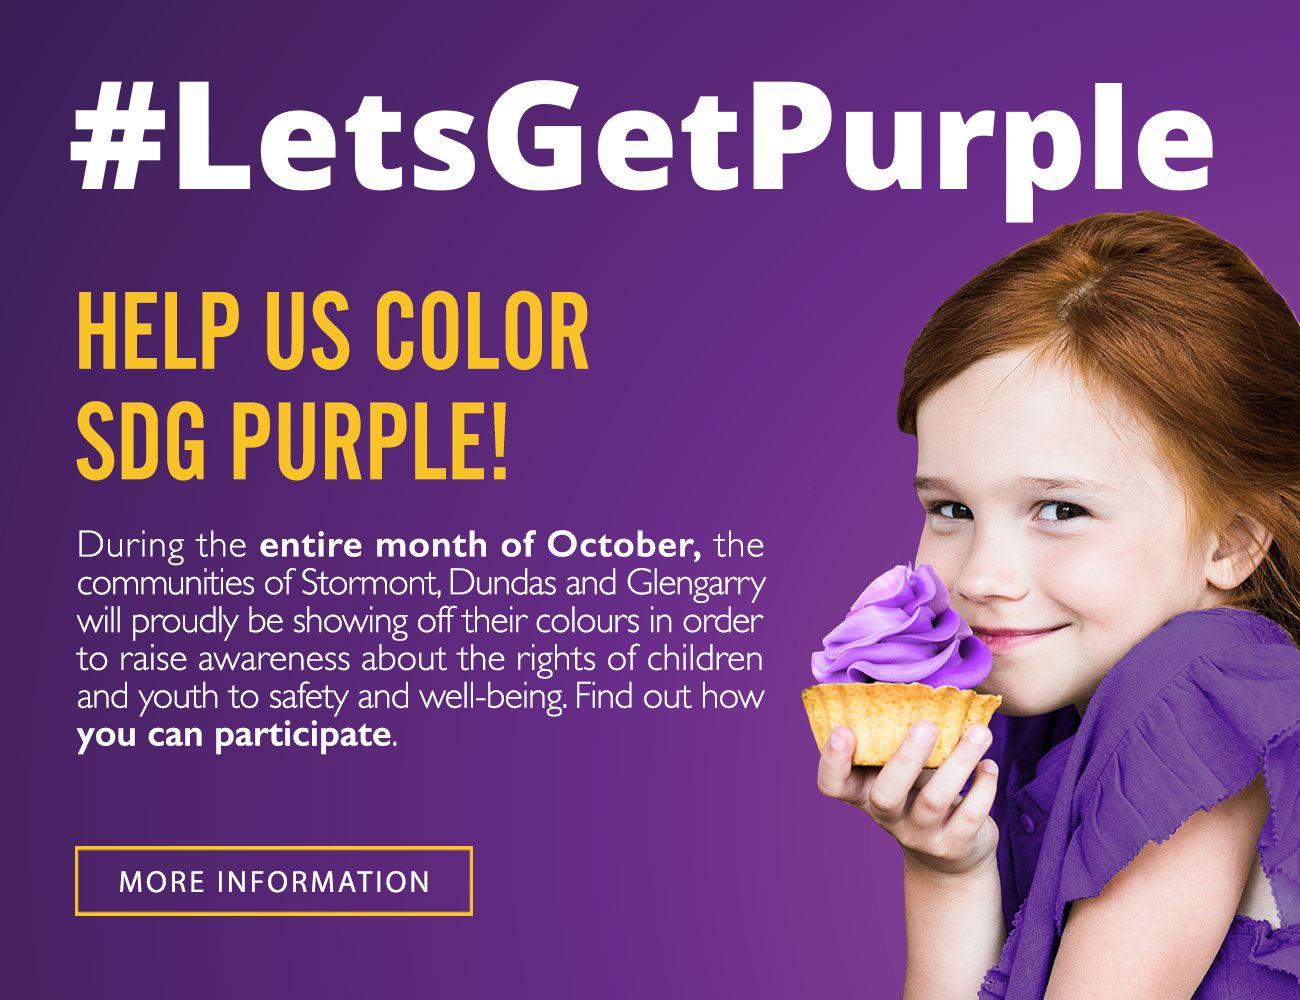 #LetsGetPurple. Help us color SDG purple! During the entire month of October, the communities of Stormont, Dundas and Glengarry will proudly be showing off their colours in rodre to raise awareness about the rights of children and youth to safety and well-beeing. Find out how you can participate. More information!